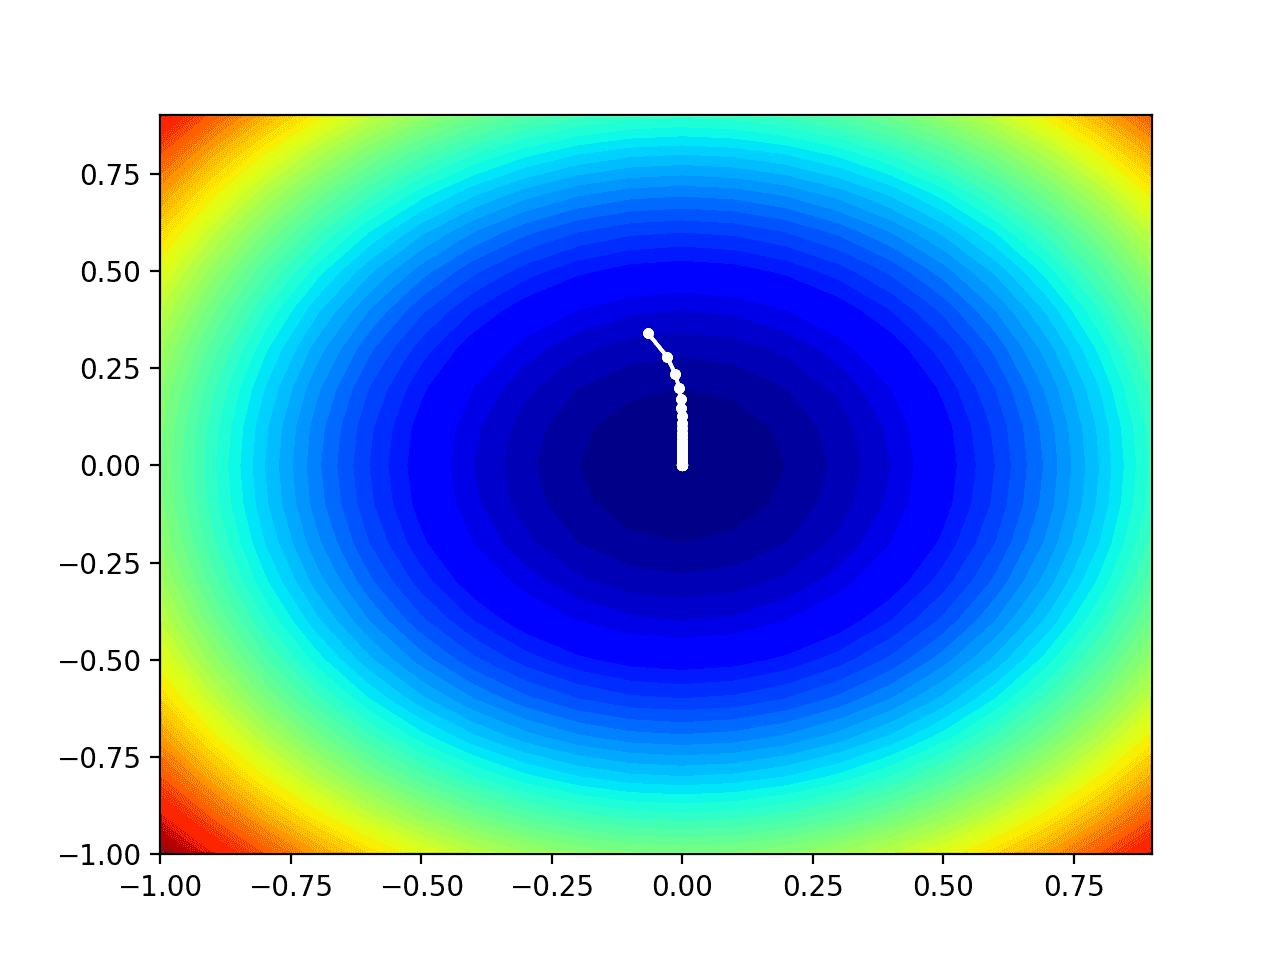 Contour Plot of the Test Objective Function With AdaGrad Search Results Shown